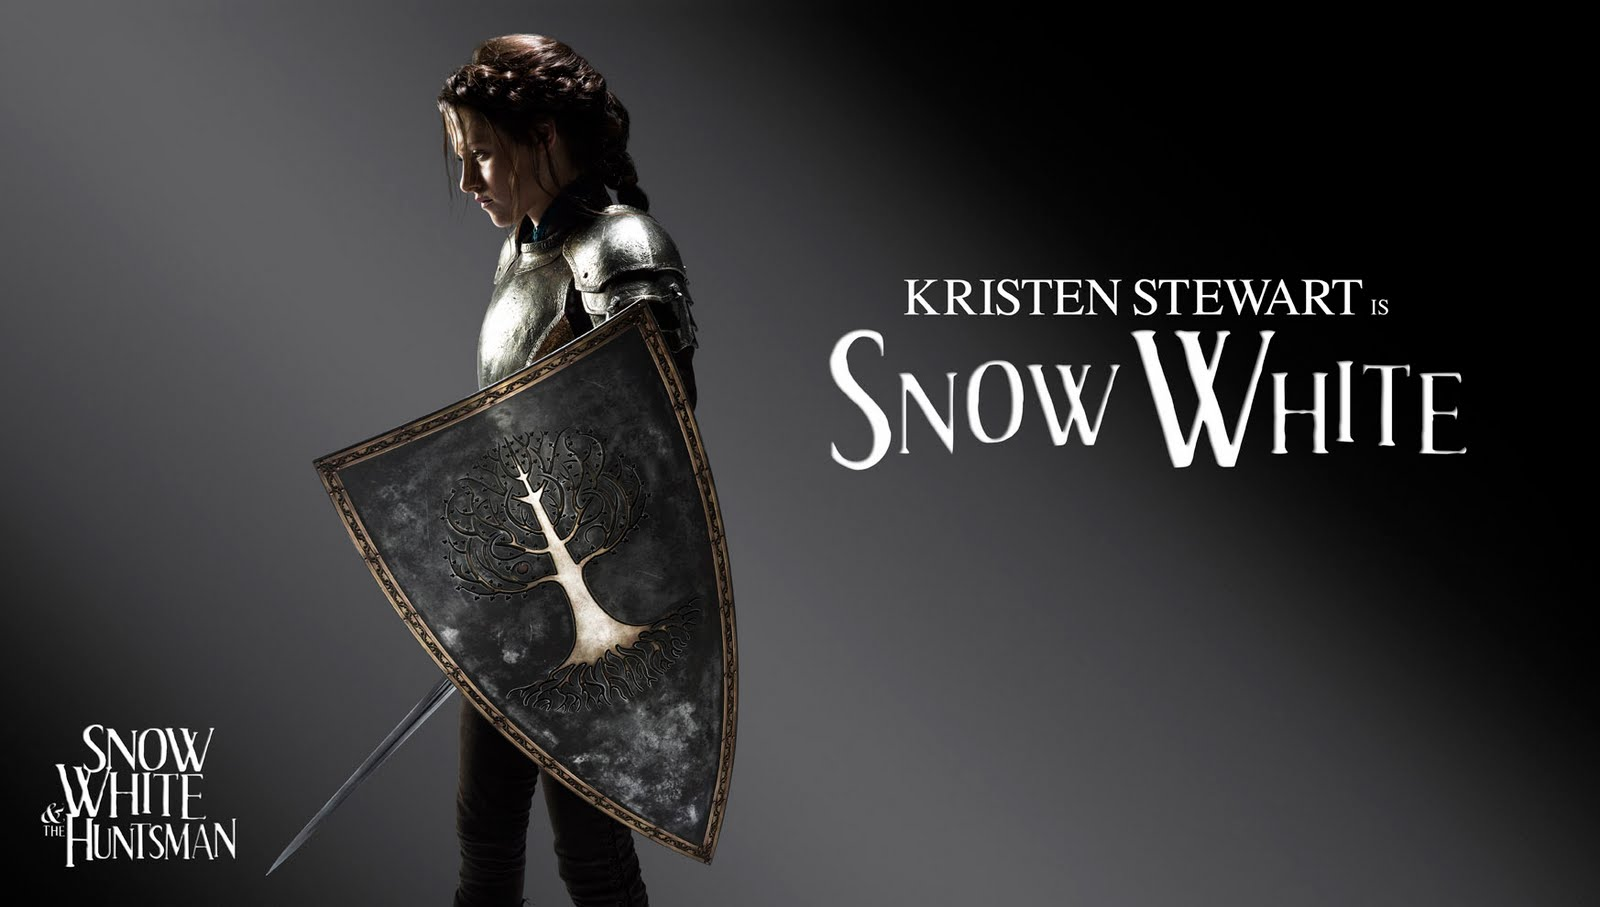 http://2.bp.blogspot.com/-JscdoMxOYko/Tiuy2qlikWI/AAAAAAAAAAw/I8CINFPMVbo/s1600/Kristen-Stewart-Snow-White-and-the-Huntsman.jpg